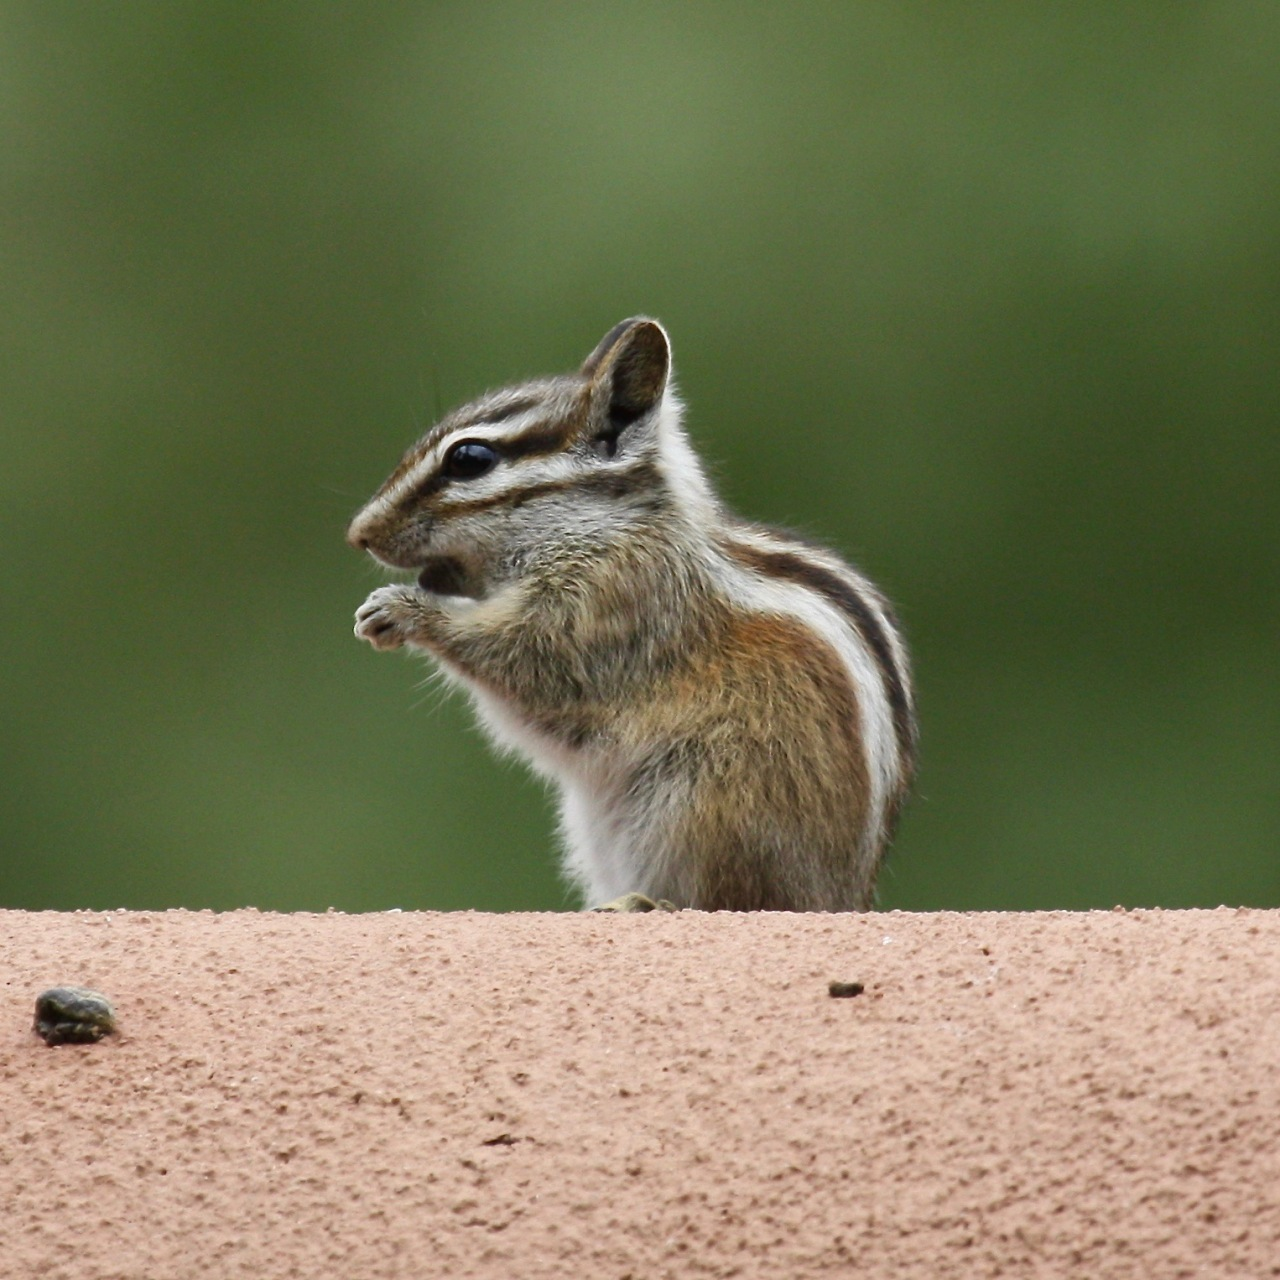 Chipmunk2 Santa Fe NM 06-2010